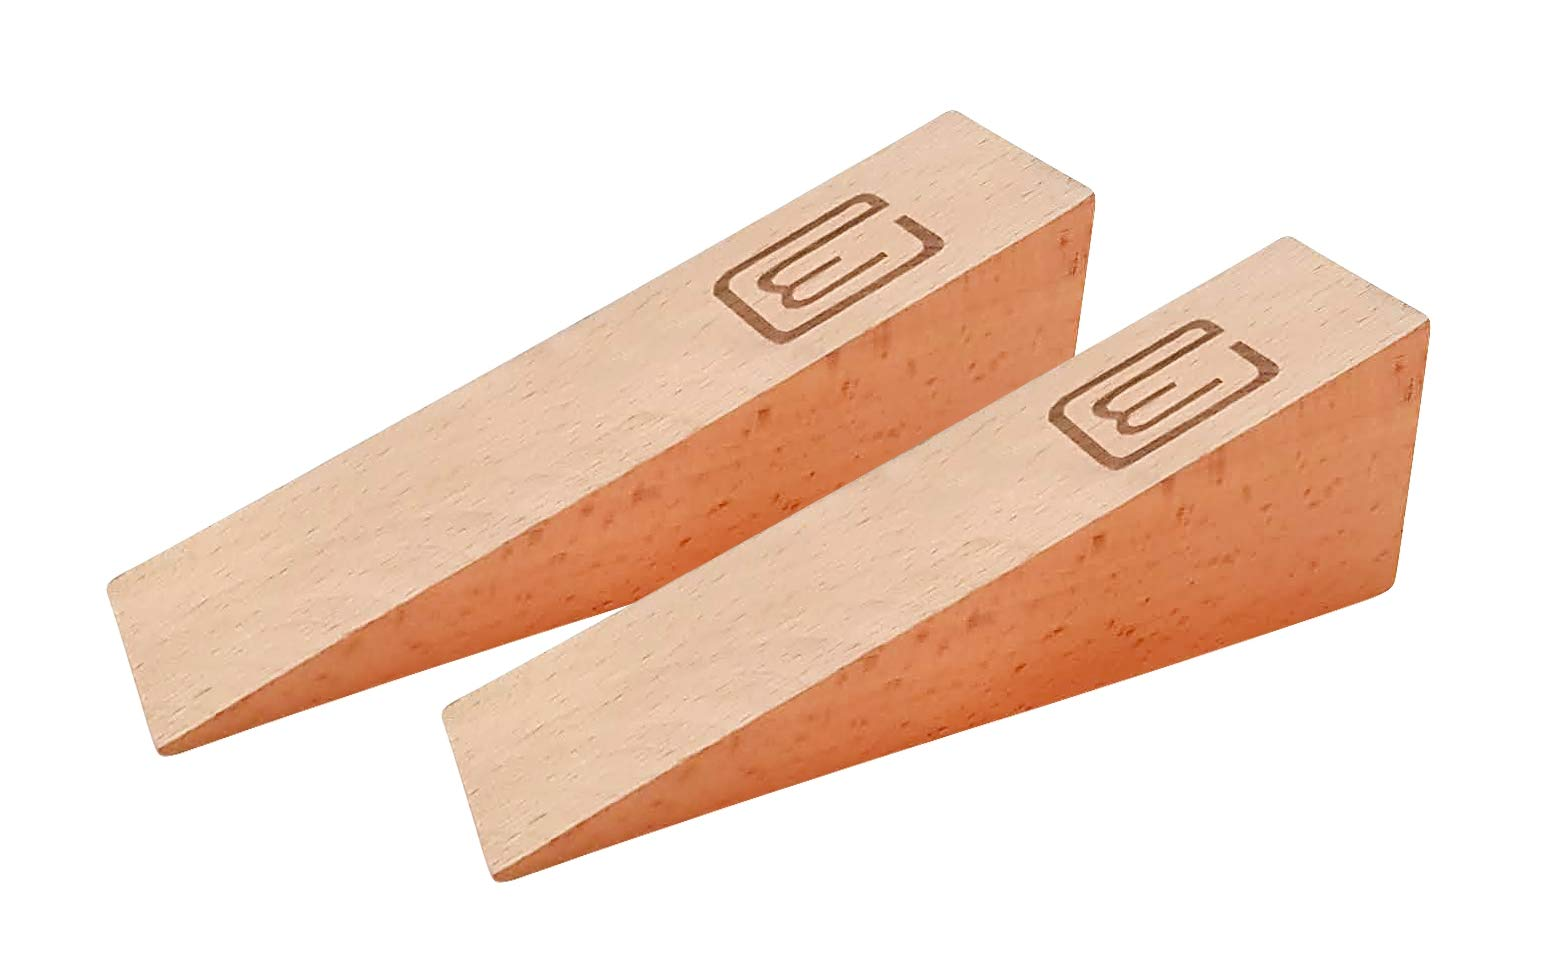 2 Durable Heavy Duty Door Stopper 4.5 Ounces Gaps up to 2 inches, Decorative Large Size Made of planed Finished Beech Wood, Works on All Surfaces Perfectly, Great Tall Door Stop Wedge by WonderThings